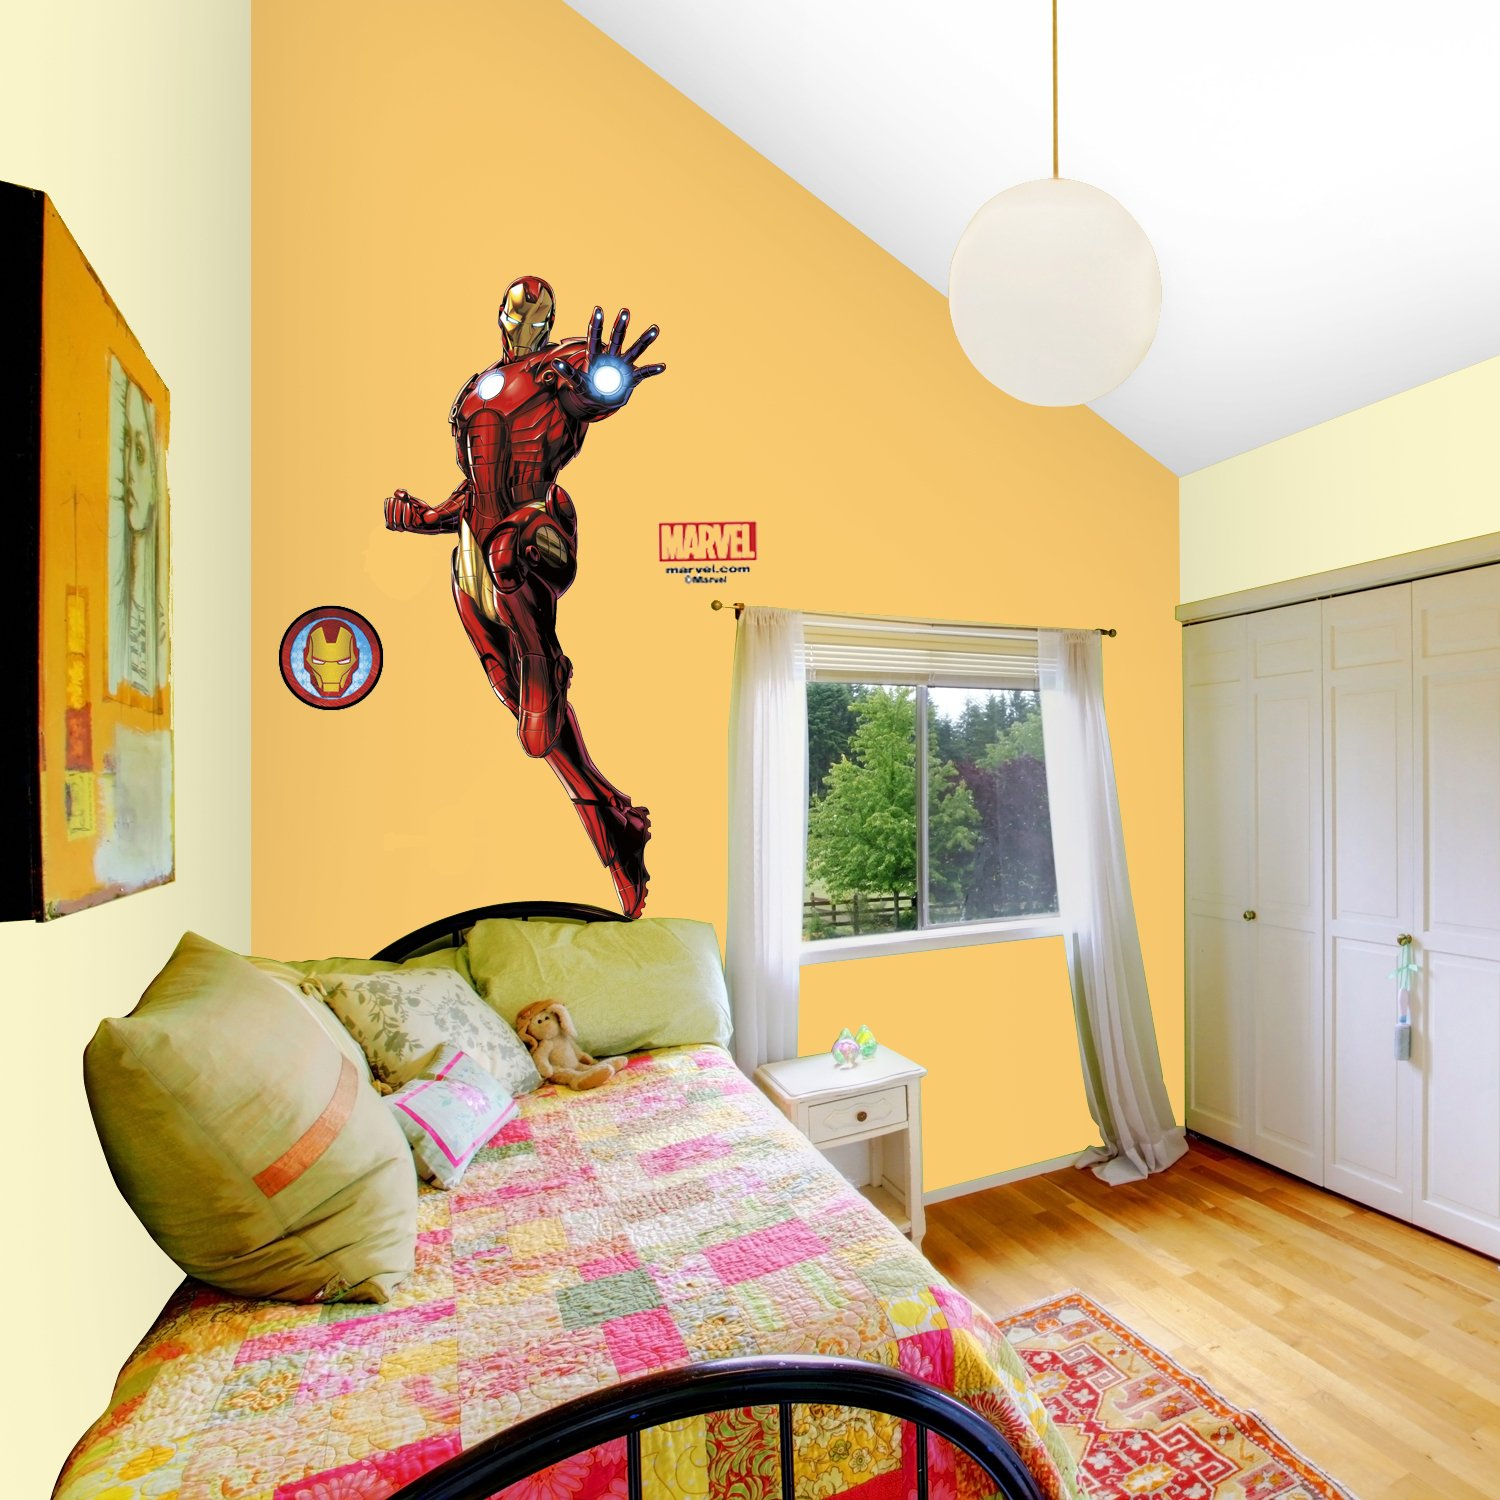 Asian Paints Nilaya Iron Man Giant Wall Sticker with Glow: Amazon.in ...